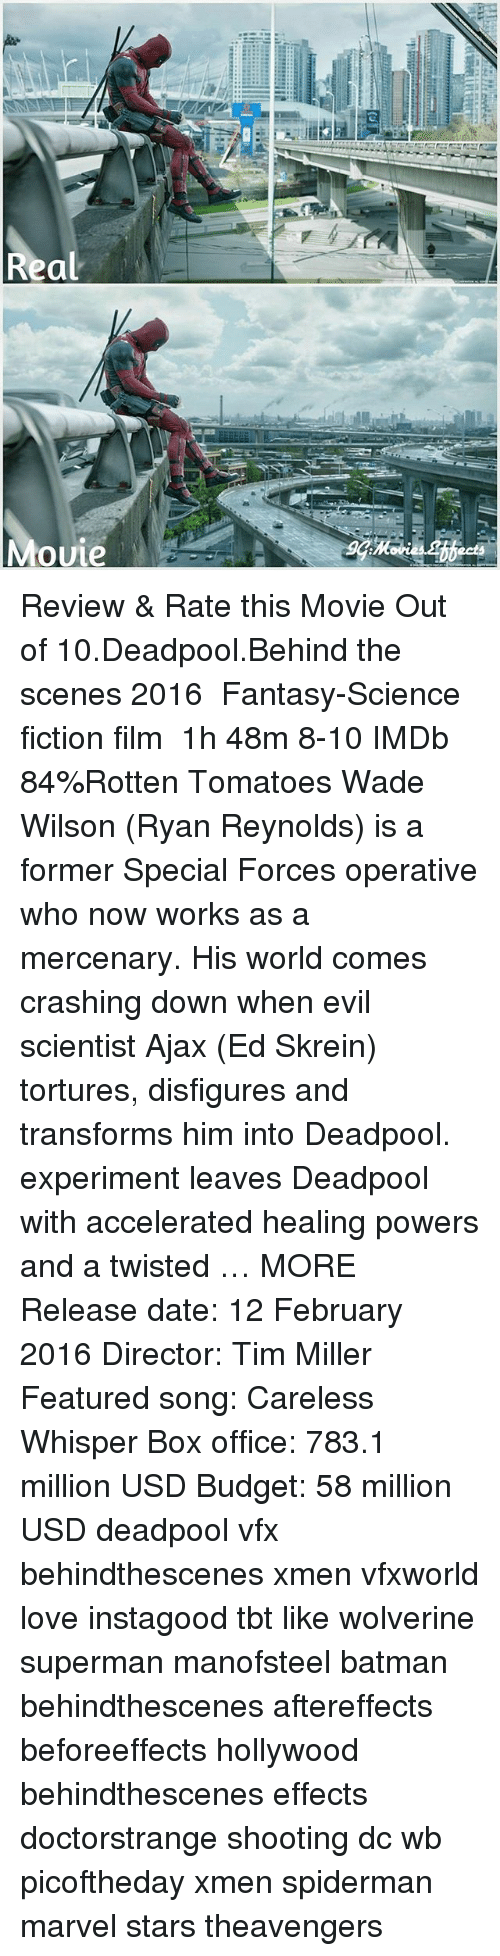 Batman, Love, and Memes: Real  Mouie  ects Review & Rate this Movie Out of 10.Deadpool.Behind the scenes 2016 ‧ Fantasy-Science fiction film ‧ 1h 48m 8-10 IMDb 84%Rotten Tomatoes Wade Wilson (Ryan Reynolds) is a former Special Forces operative who now works as a mercenary. His world comes crashing down when evil scientist Ajax (Ed Skrein) tortures, disfigures and transforms him into Deadpool. experiment leaves Deadpool with accelerated healing powers and a twisted … MORE Release date: 12 February 2016 Director: Tim Miller Featured song: Careless Whisper Box office: 783.1 million USD Budget: 58 million USD deadpool vfx behindthescenes xmen vfxworld love instagood tbt like wolverine superman manofsteel batman behindthescenes aftereffects beforeeffects hollywood behindthescenes effects doctorstrange shooting dc wb picoftheday xmen spiderman marvel stars theavengers